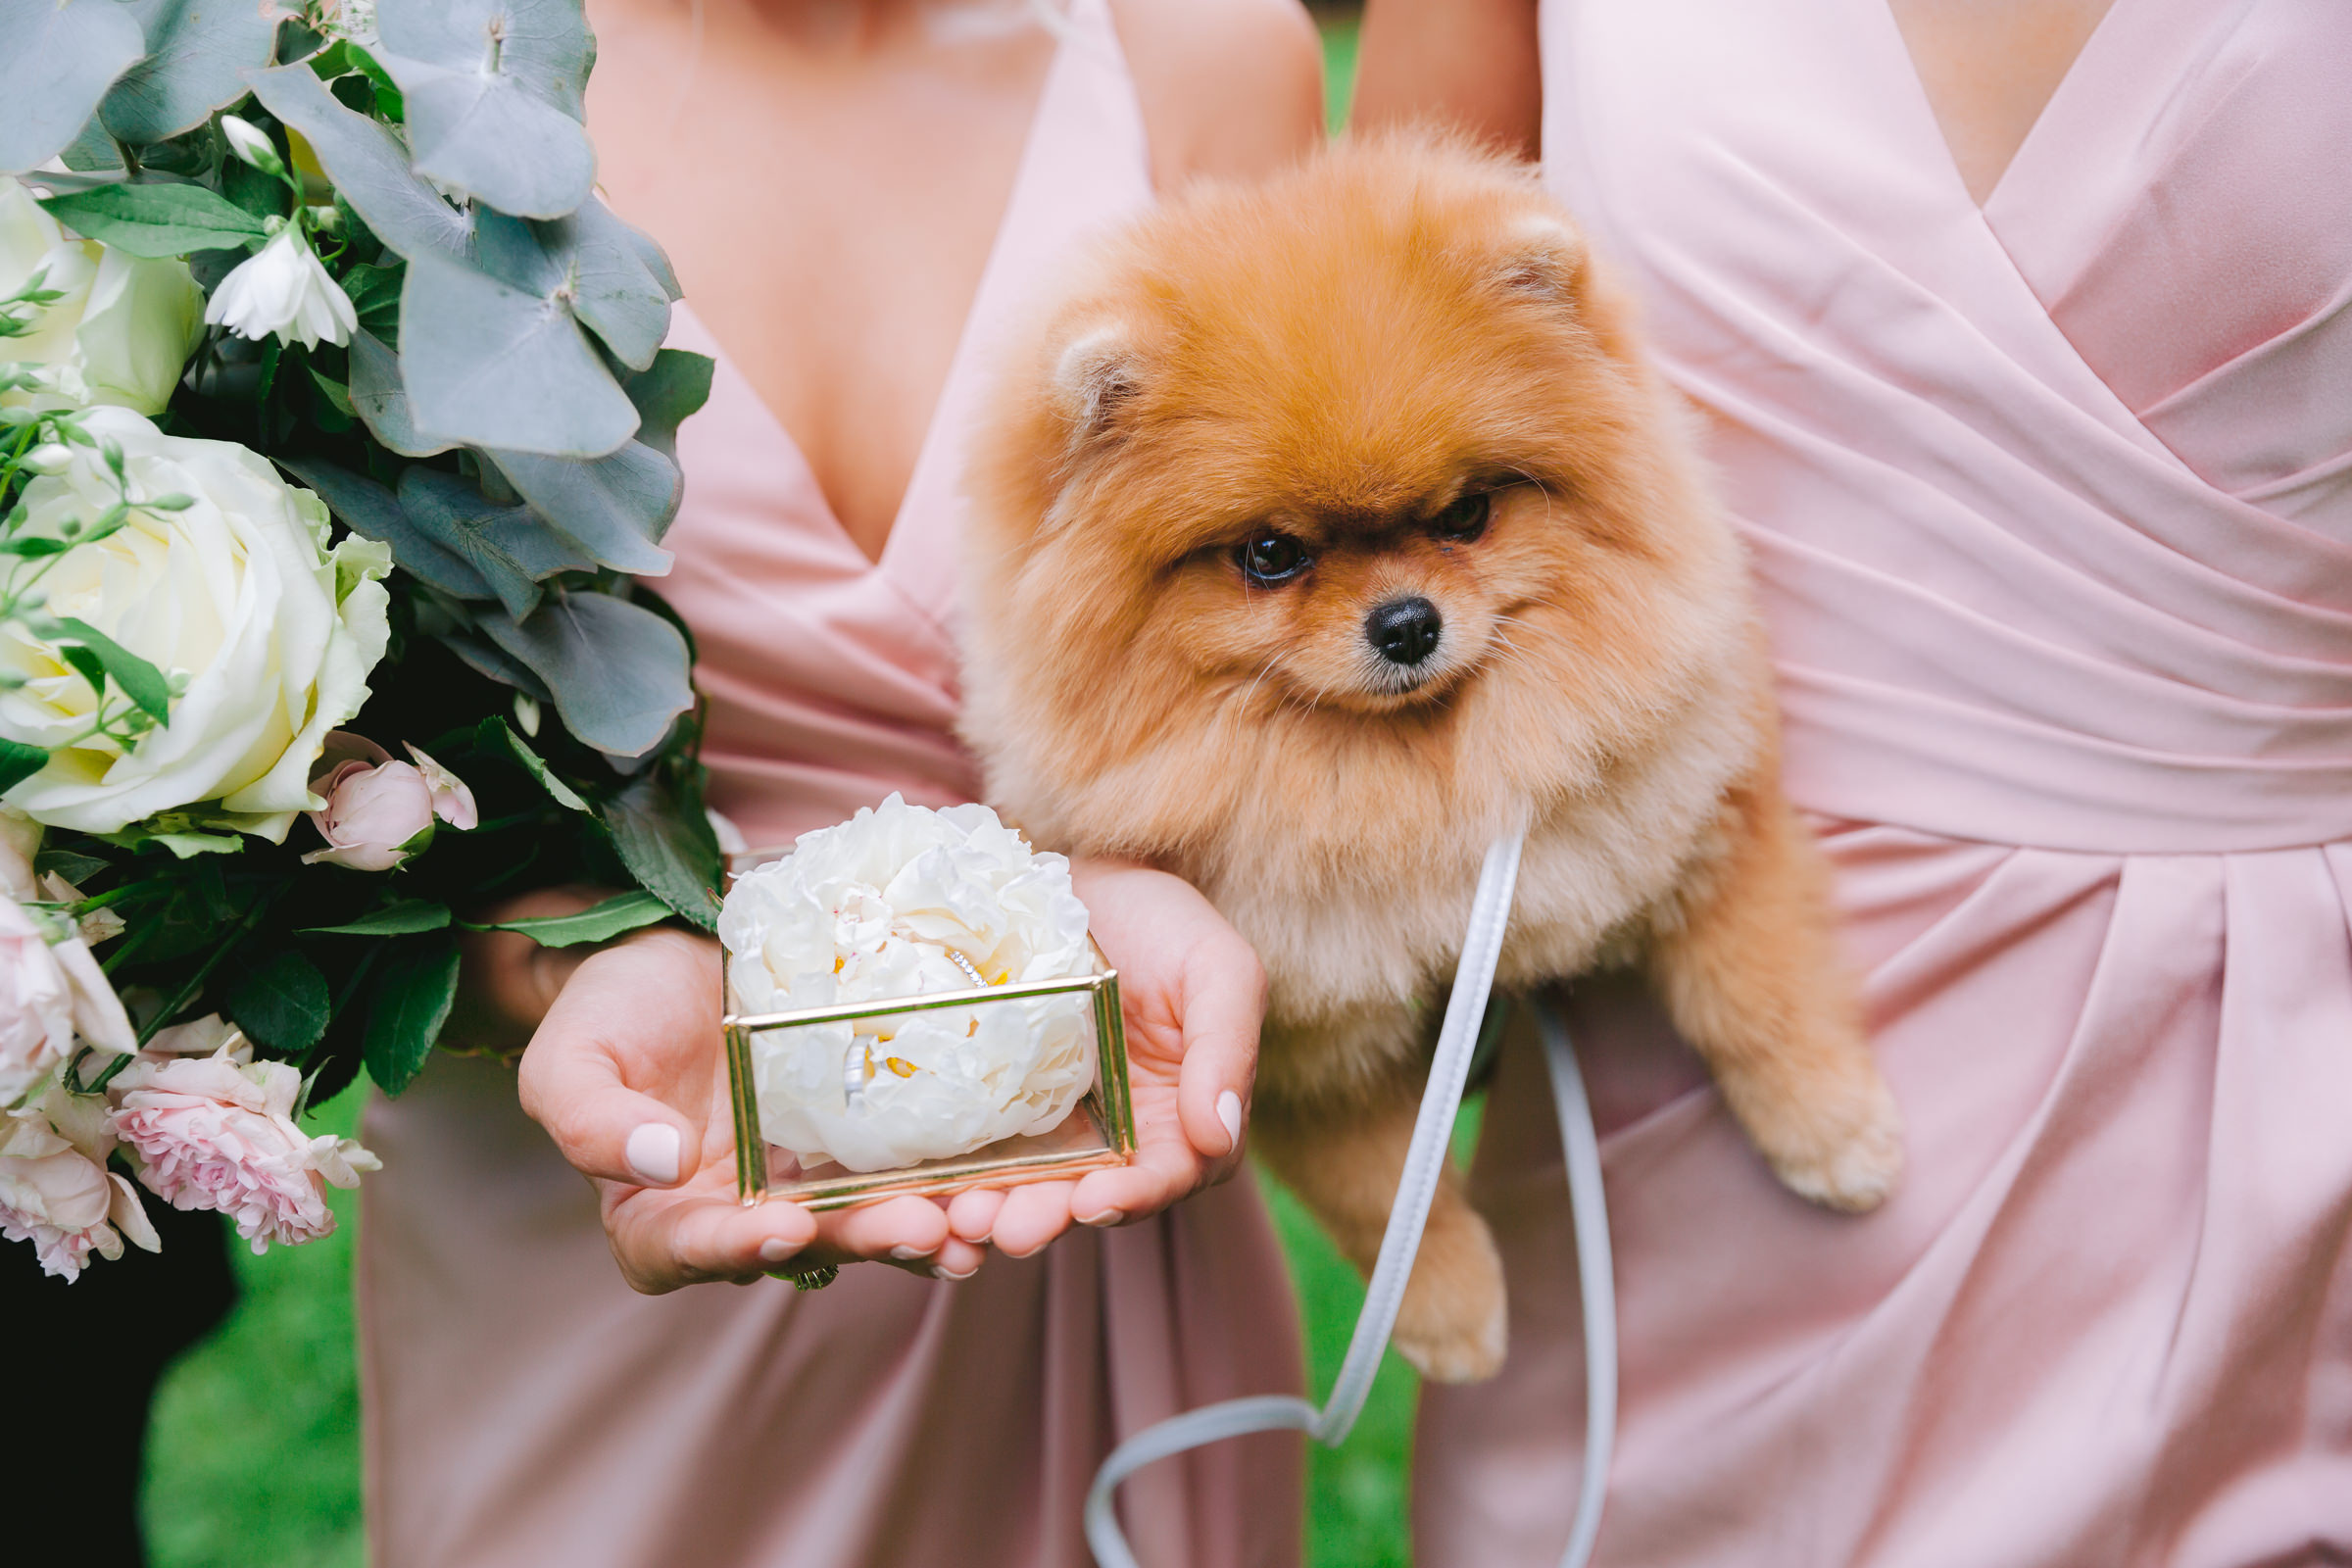 Pomeranian puppy being held by bridesmaids - photo by Peter van der Lingen Wedding Photography